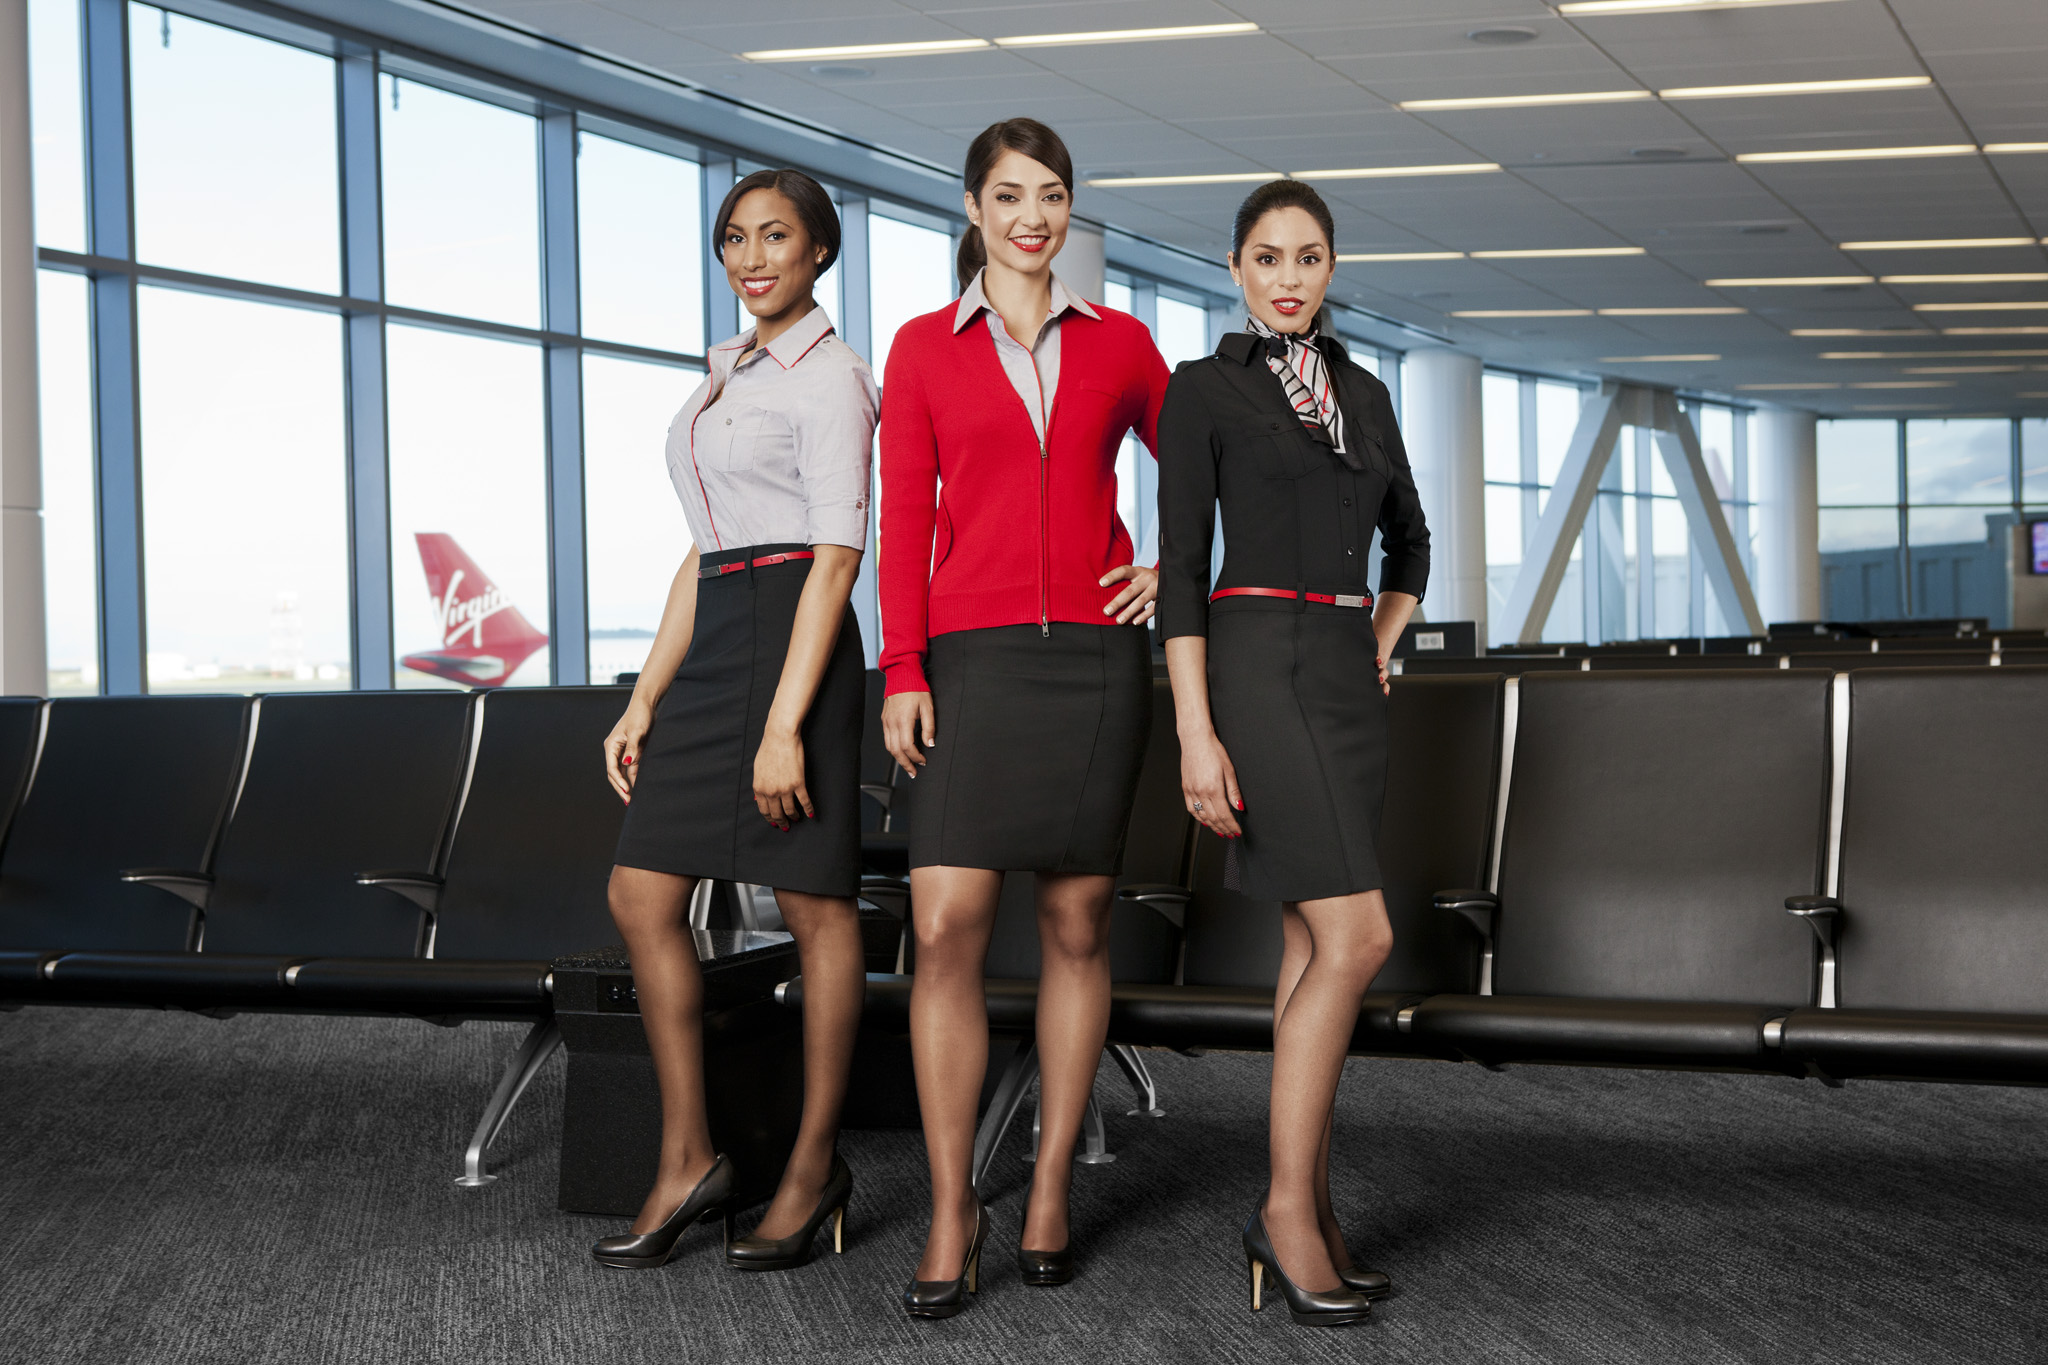 Thedesignair Top 10 Airline Uniforms Of 2013 Thedesignair